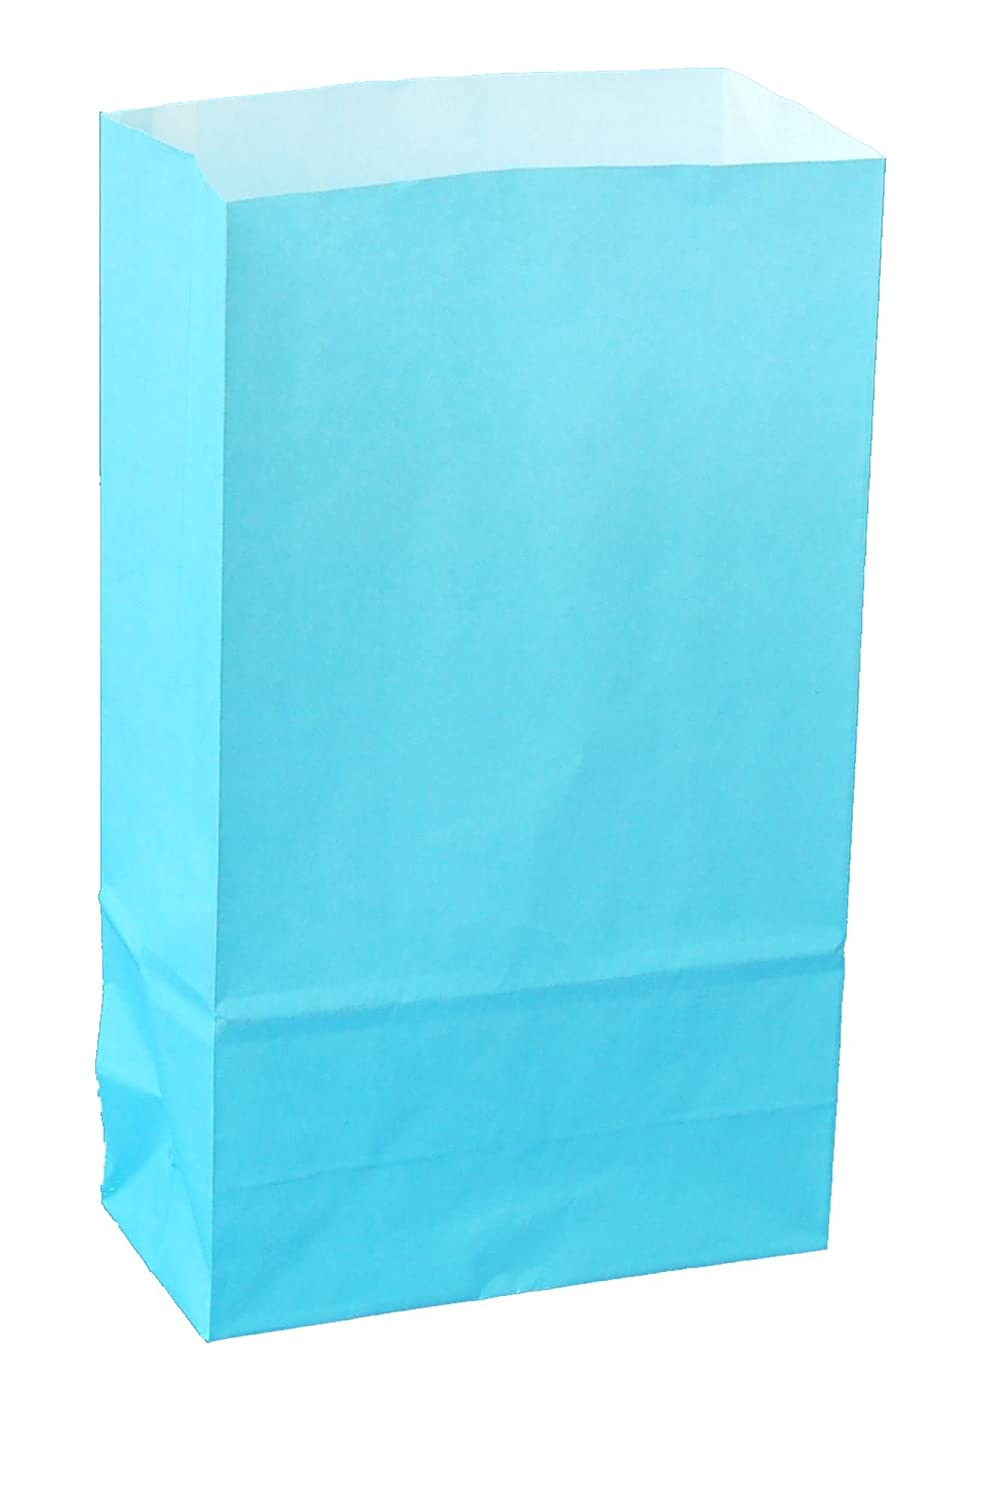 PAPER PARTY BAGS CHOOSE YOUR COLOUR Thepaperbagstore 15 HOT PINK TM